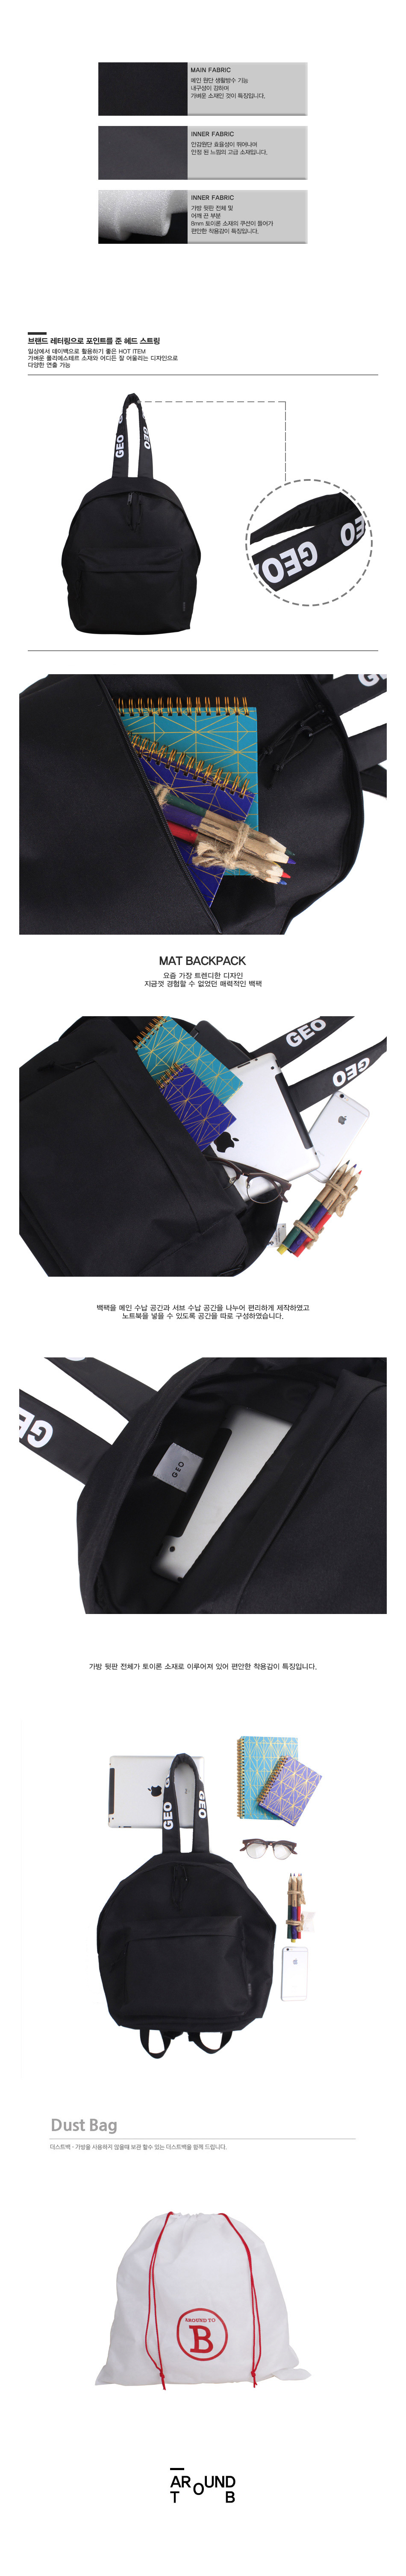 [AROUND TO B] MAT BACKPACK BLACK 매트 백팩 블랙